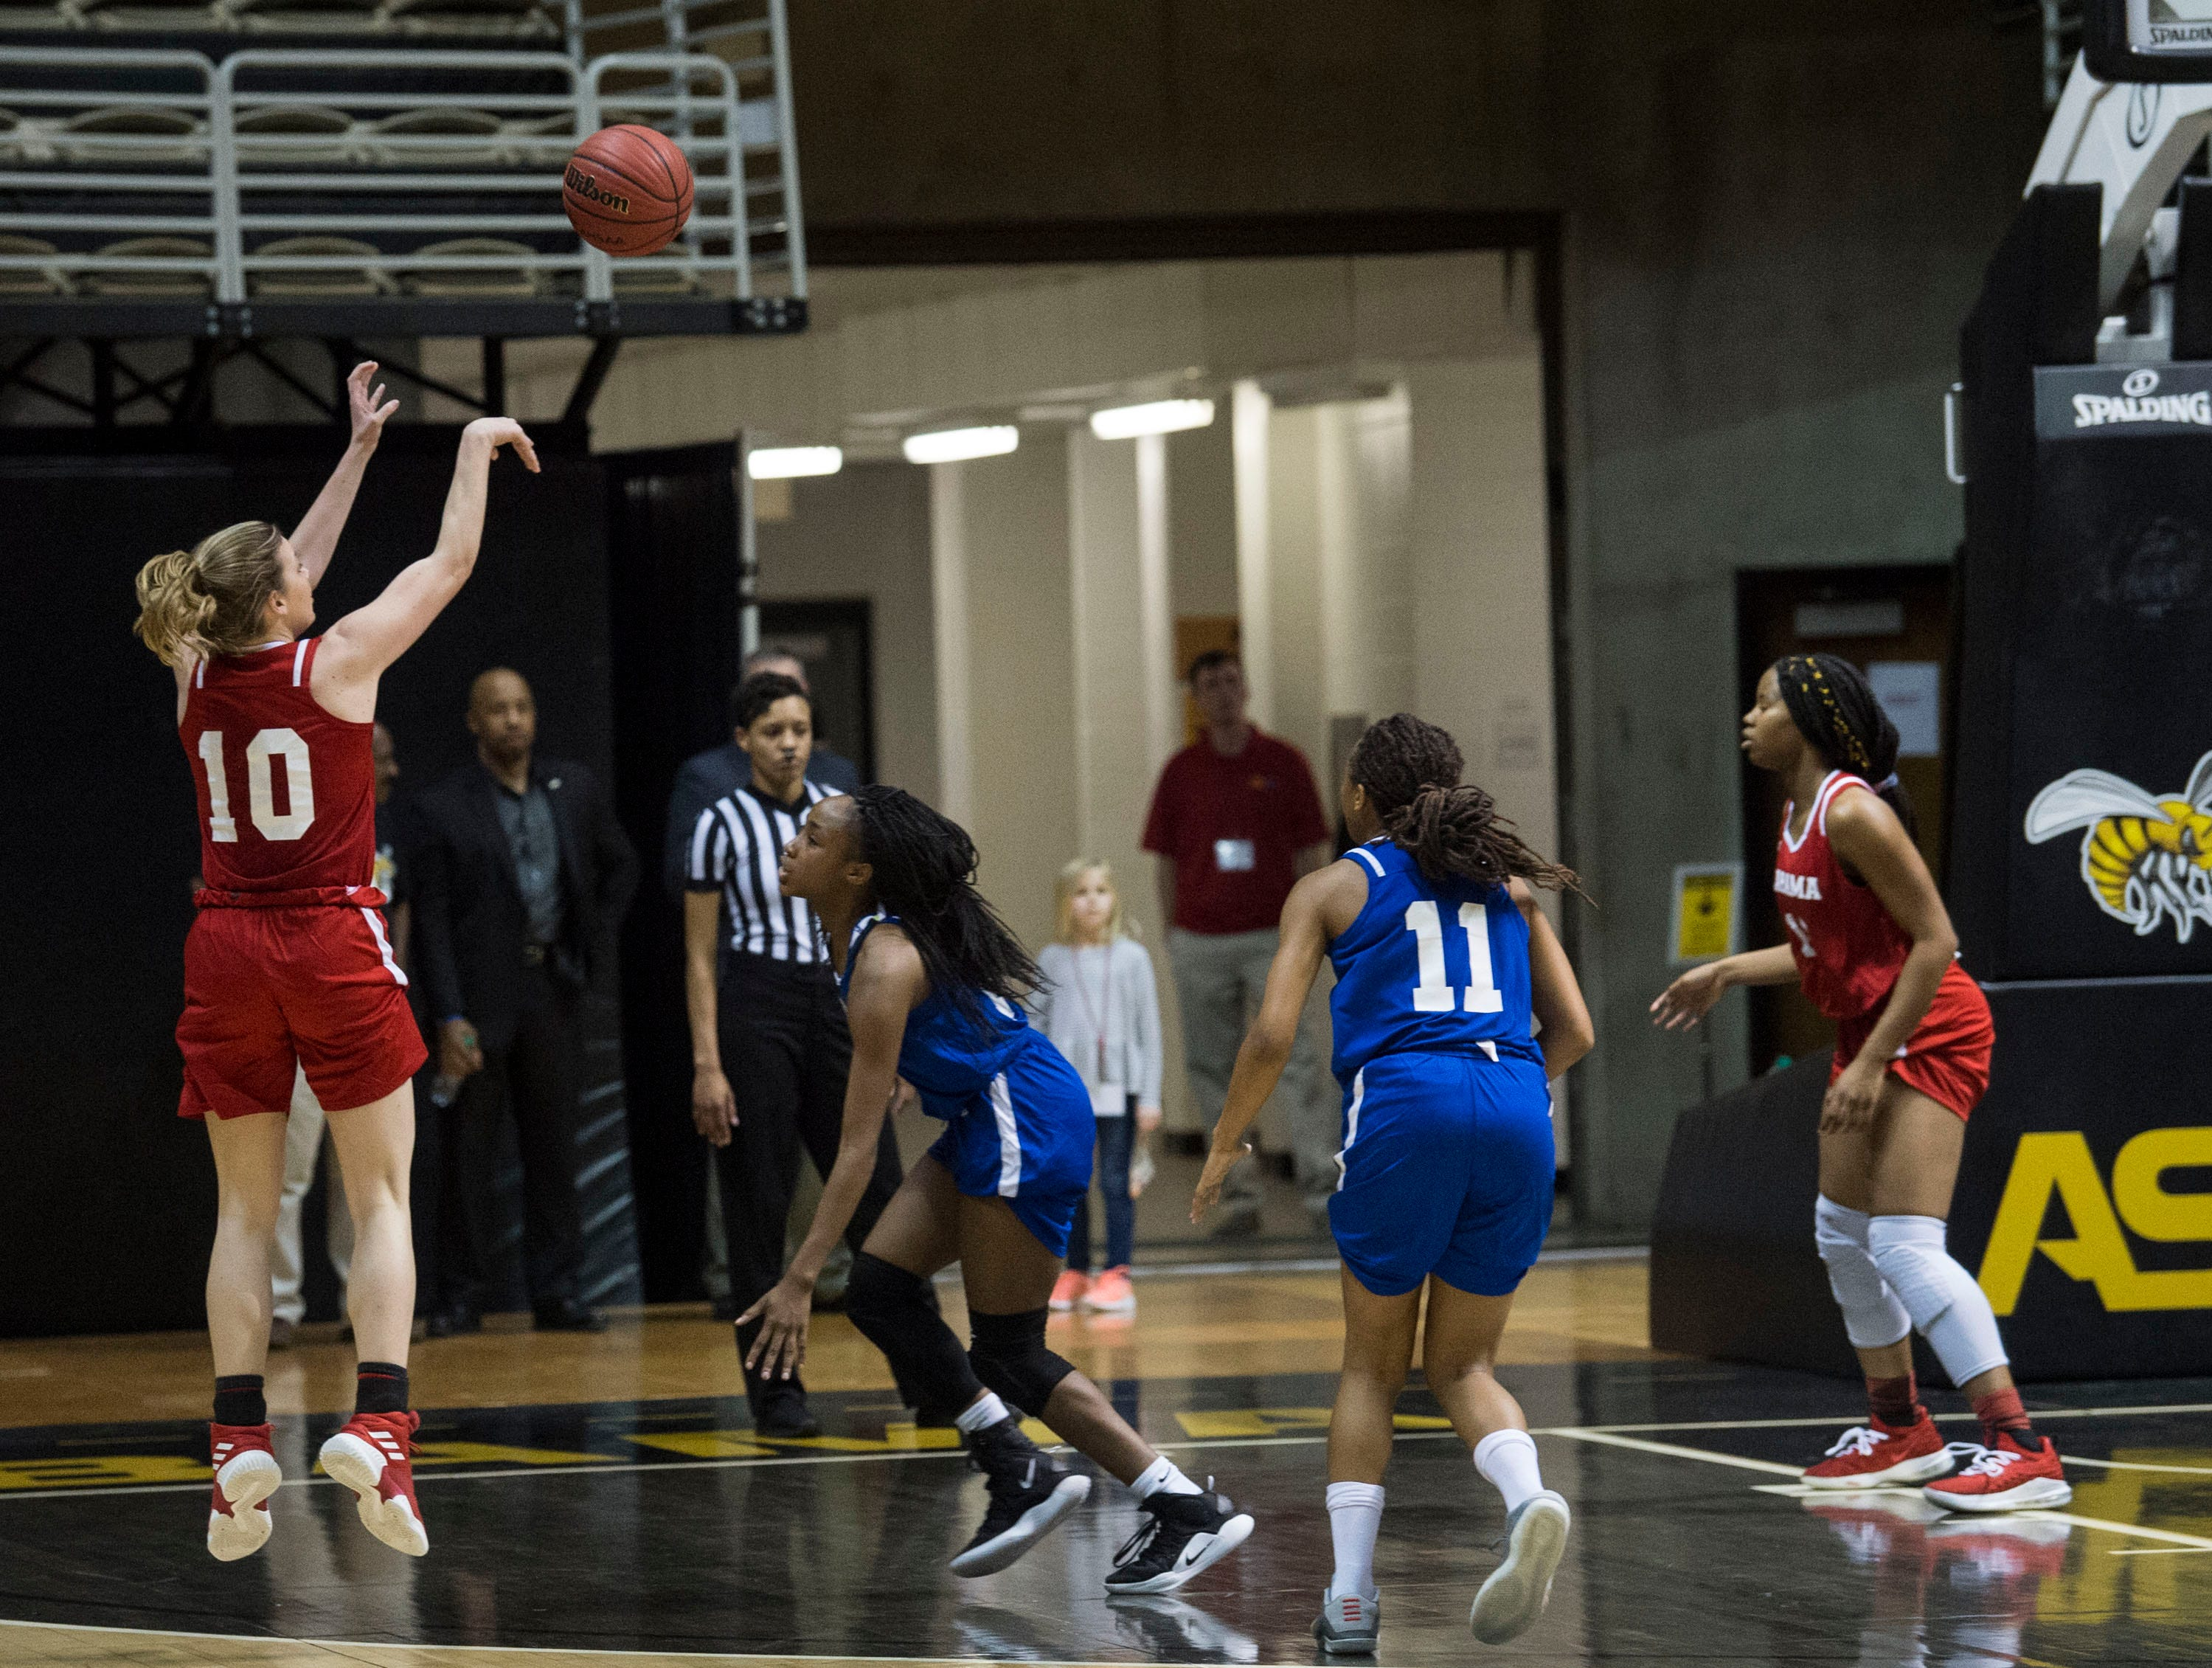 Alabama's Annie Hughes (10) takes a three pointer during the Alabama-Mississippi All-Star game at the Dunn-Oliver Acadome in Montgomery, Ala., on Friday, March 15, 2019. Alabama All-stars defeated the Mississippi All-stars 101-82.